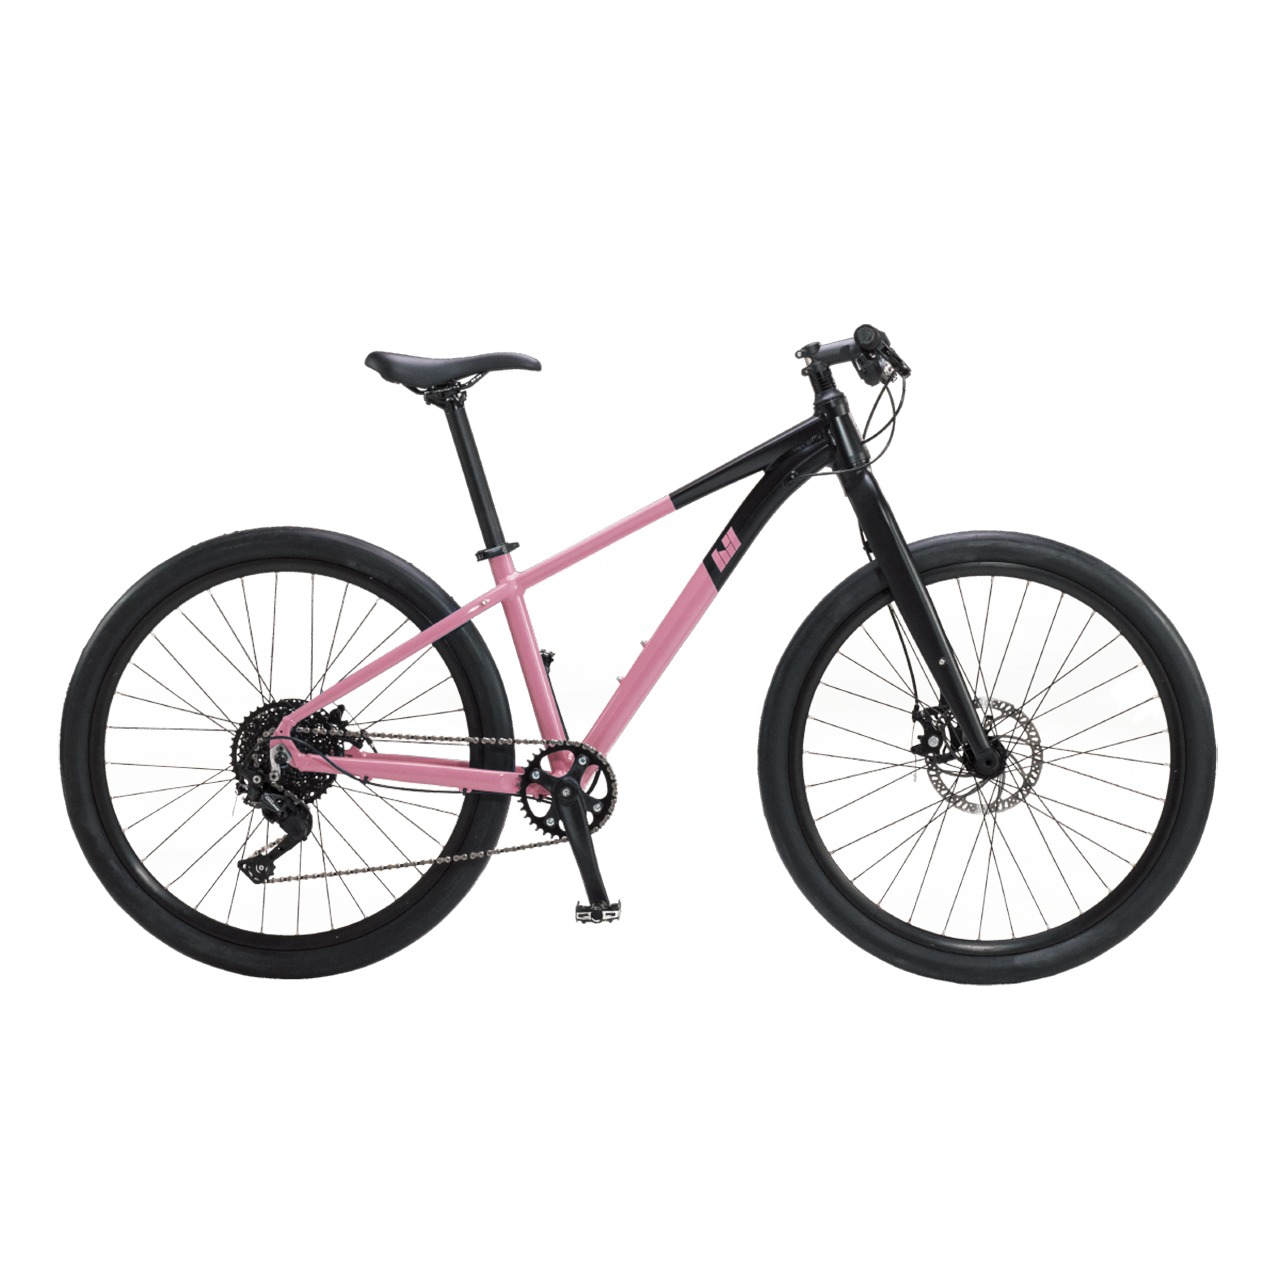 //bikeis.life/wp-content/uploads/2019/03/A1_Pink_sqd.png